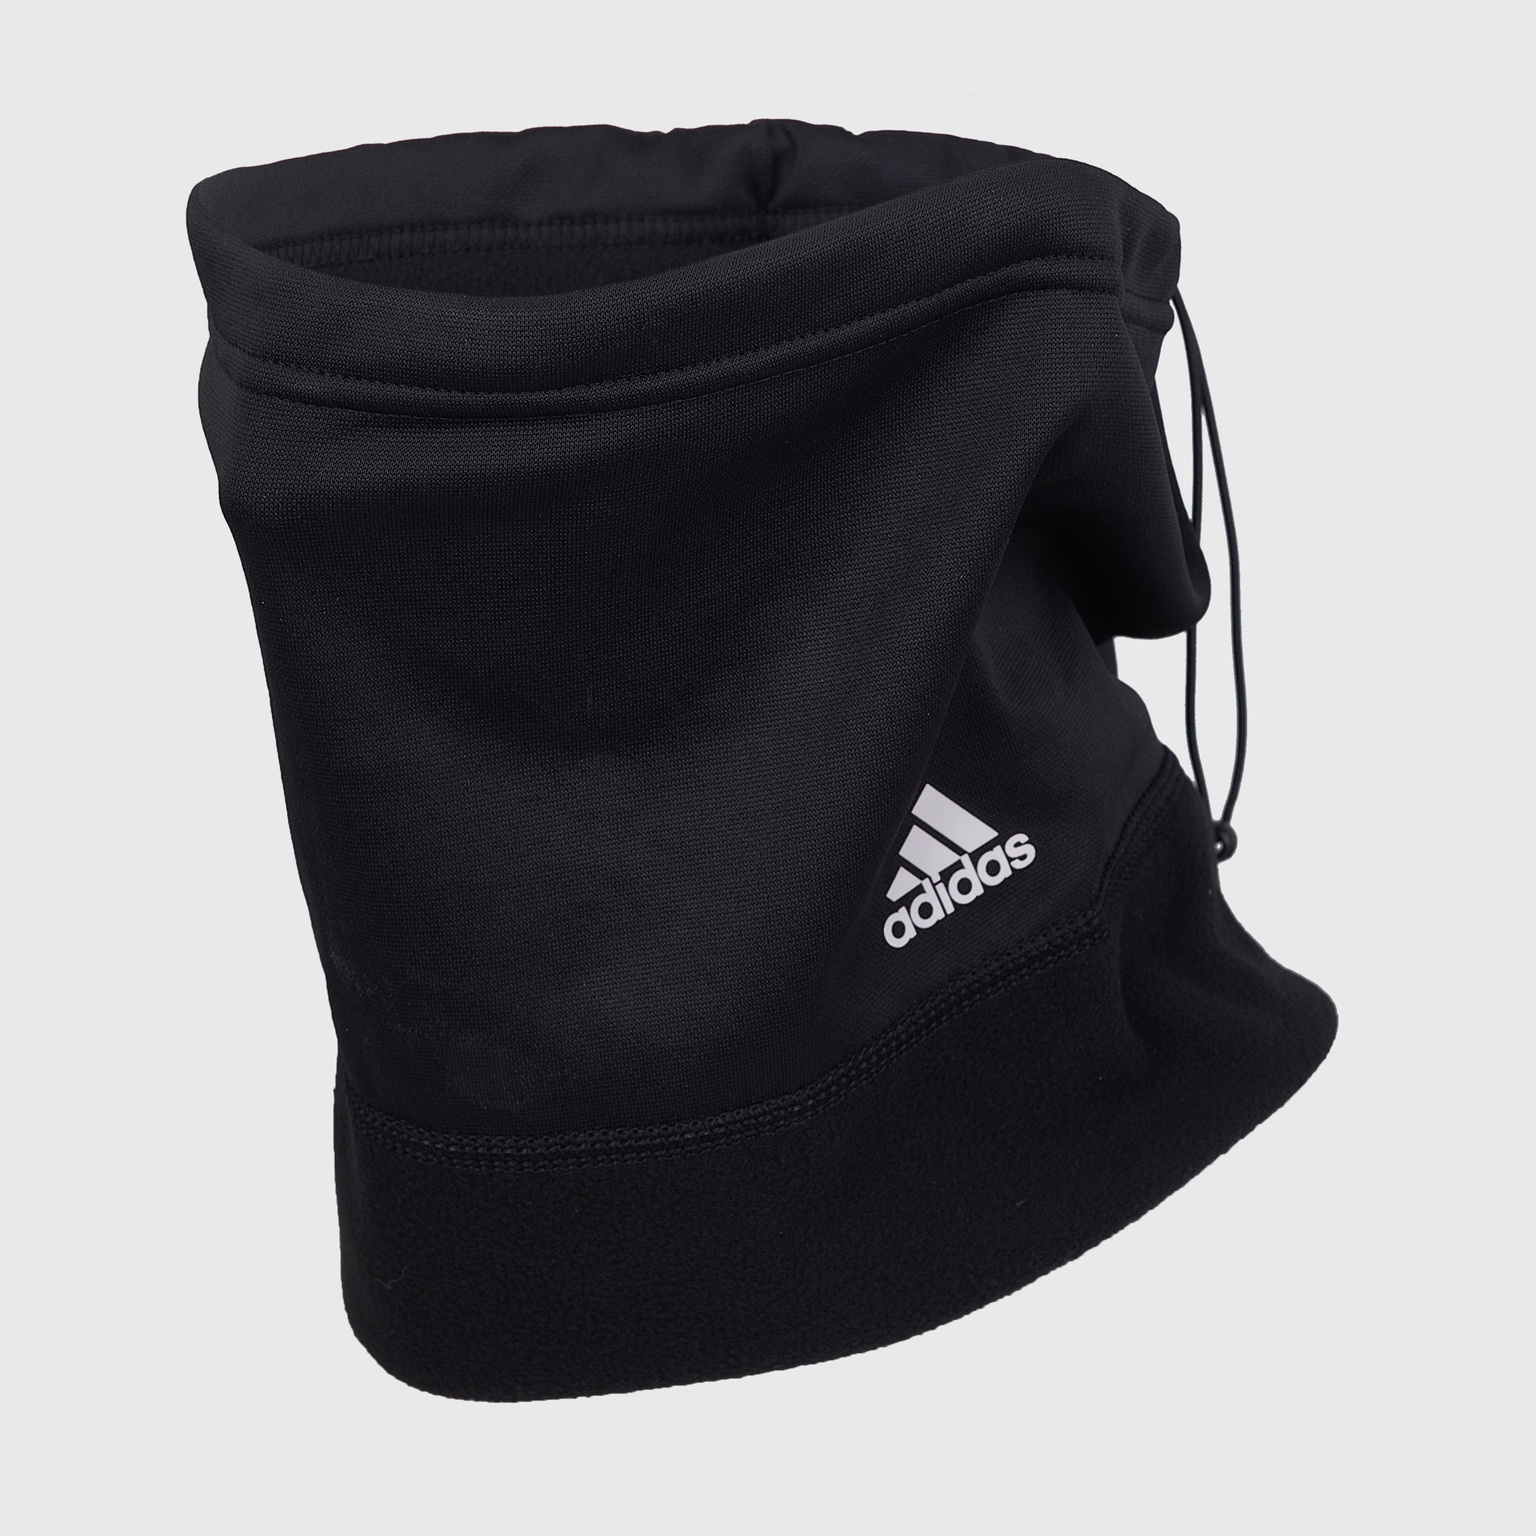 Повязка на шею Adidas Tiro DY1990 повязка на шею гейтор nike reversible neck warmer n wa 53 072 os